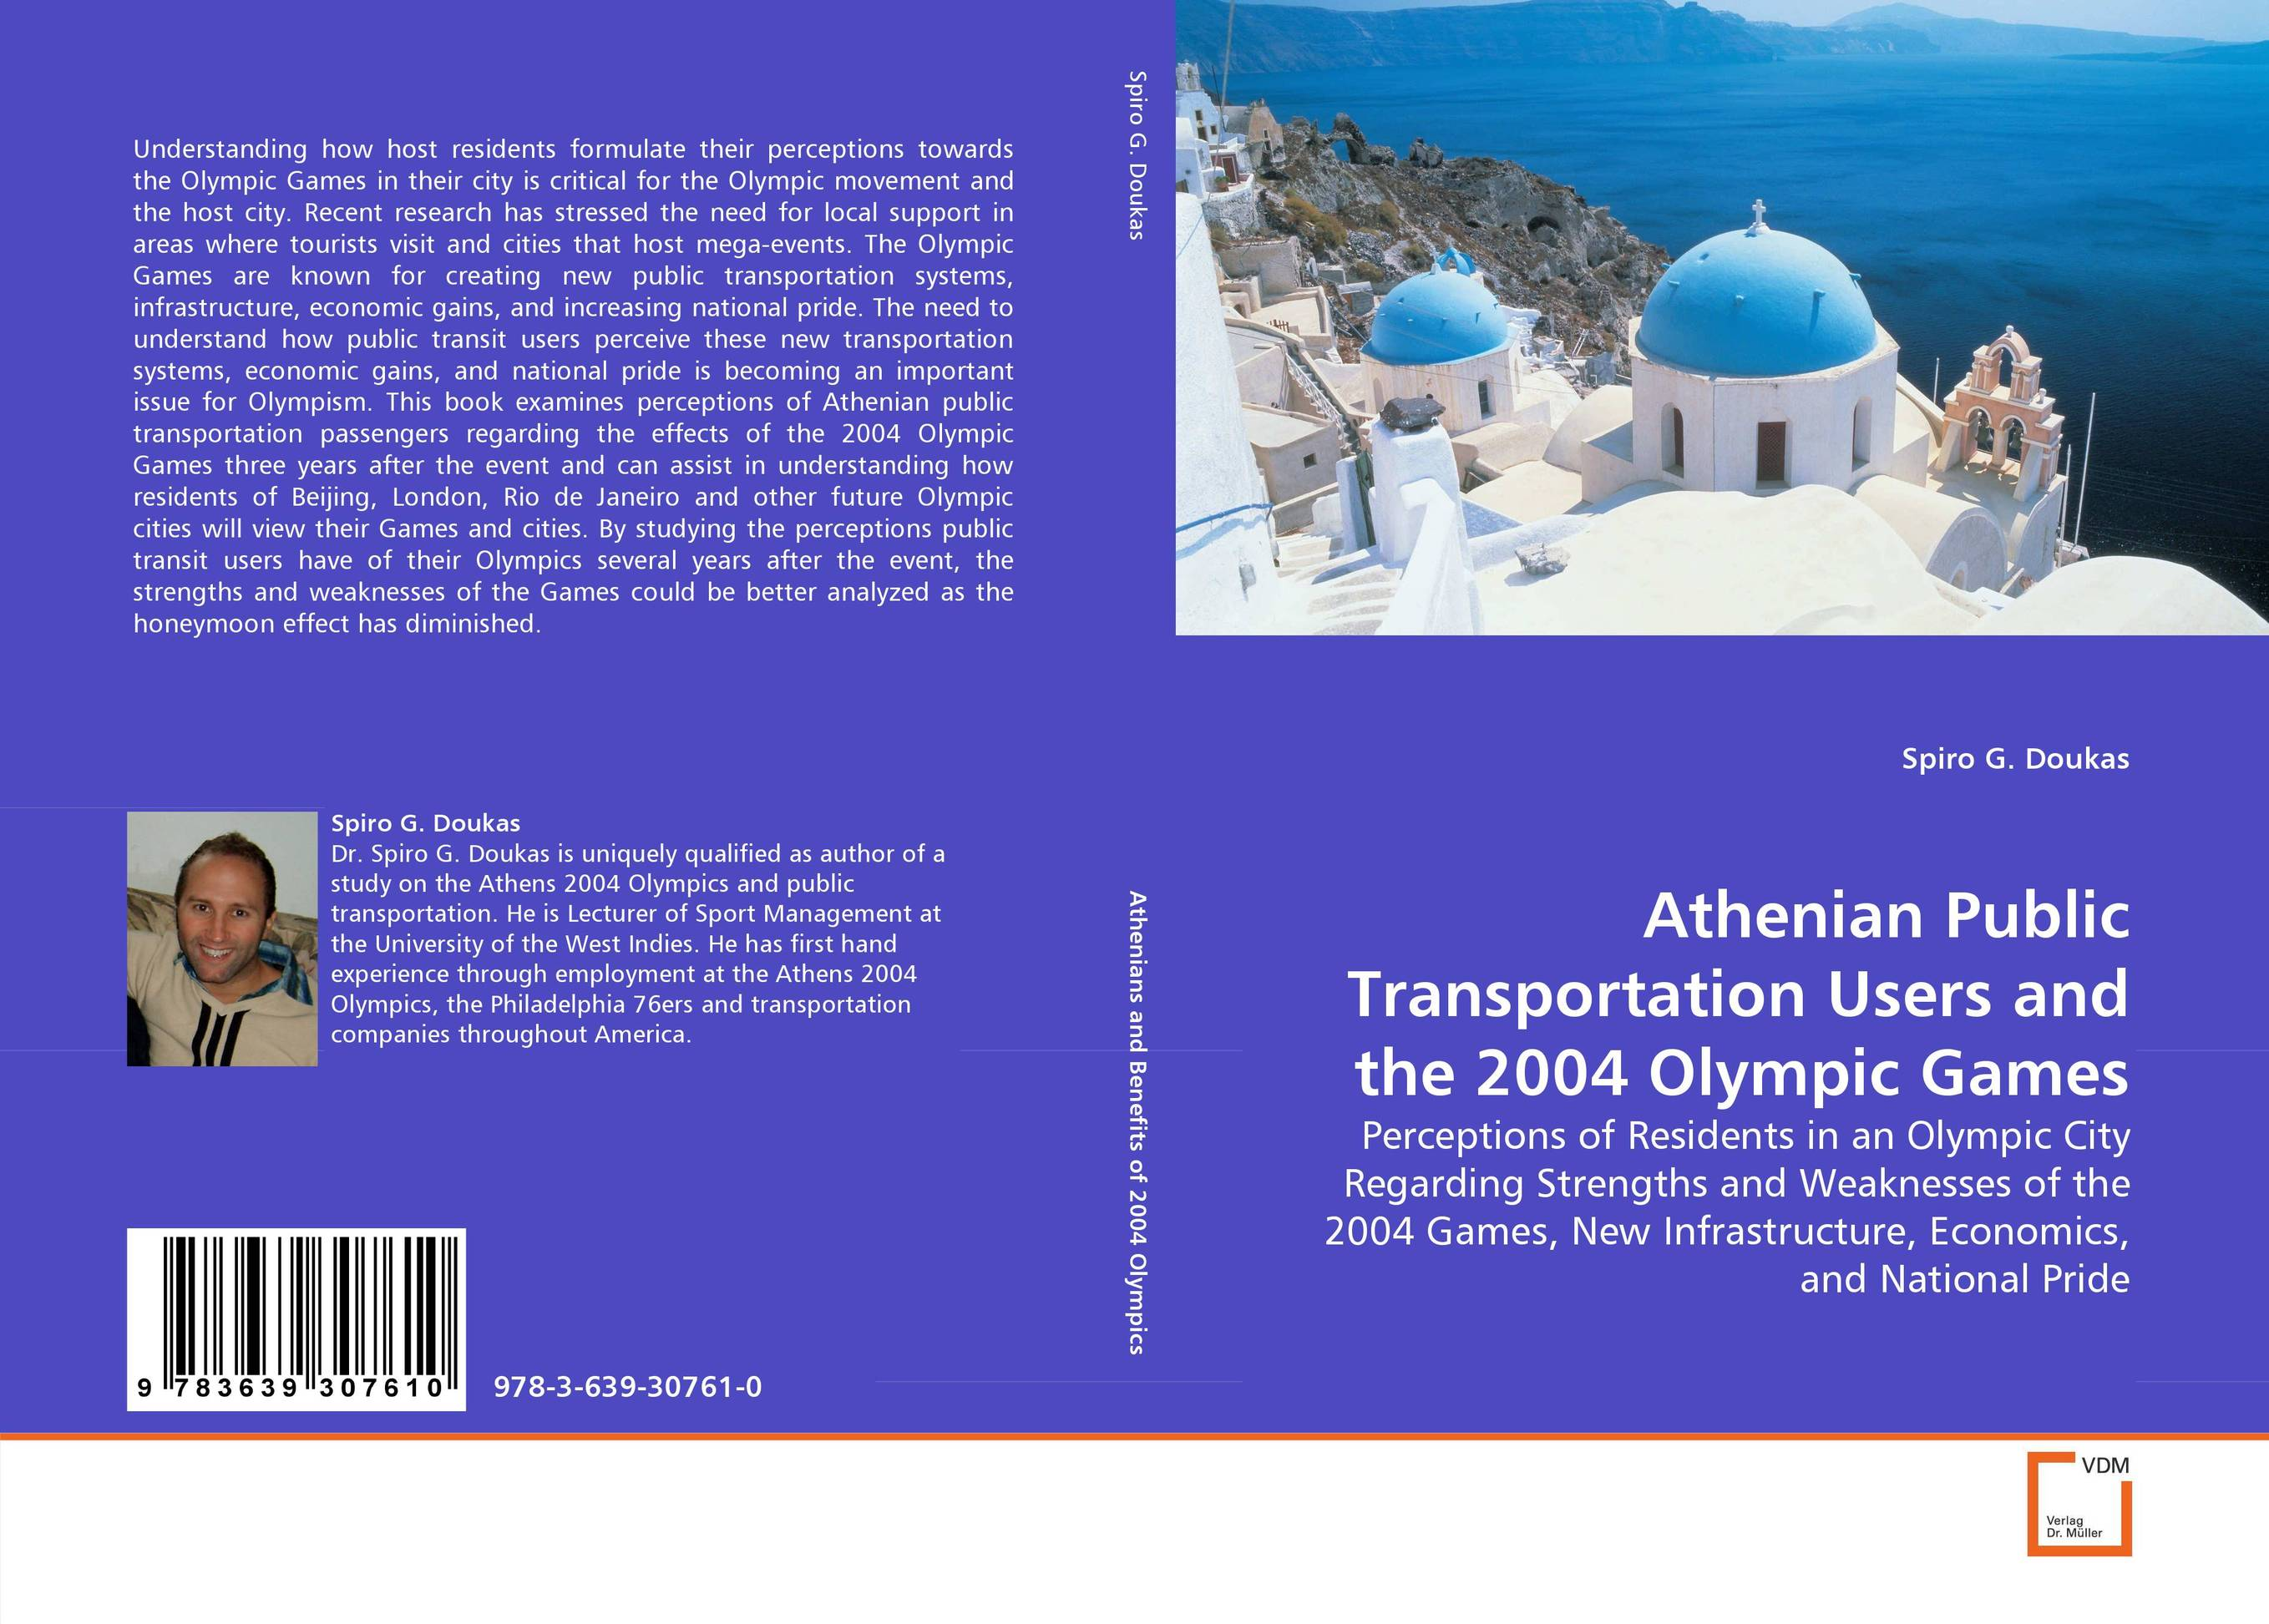 Athenian Public Transportation Users and the 2004 Olympic Games transit rights in petroleum transportation systems